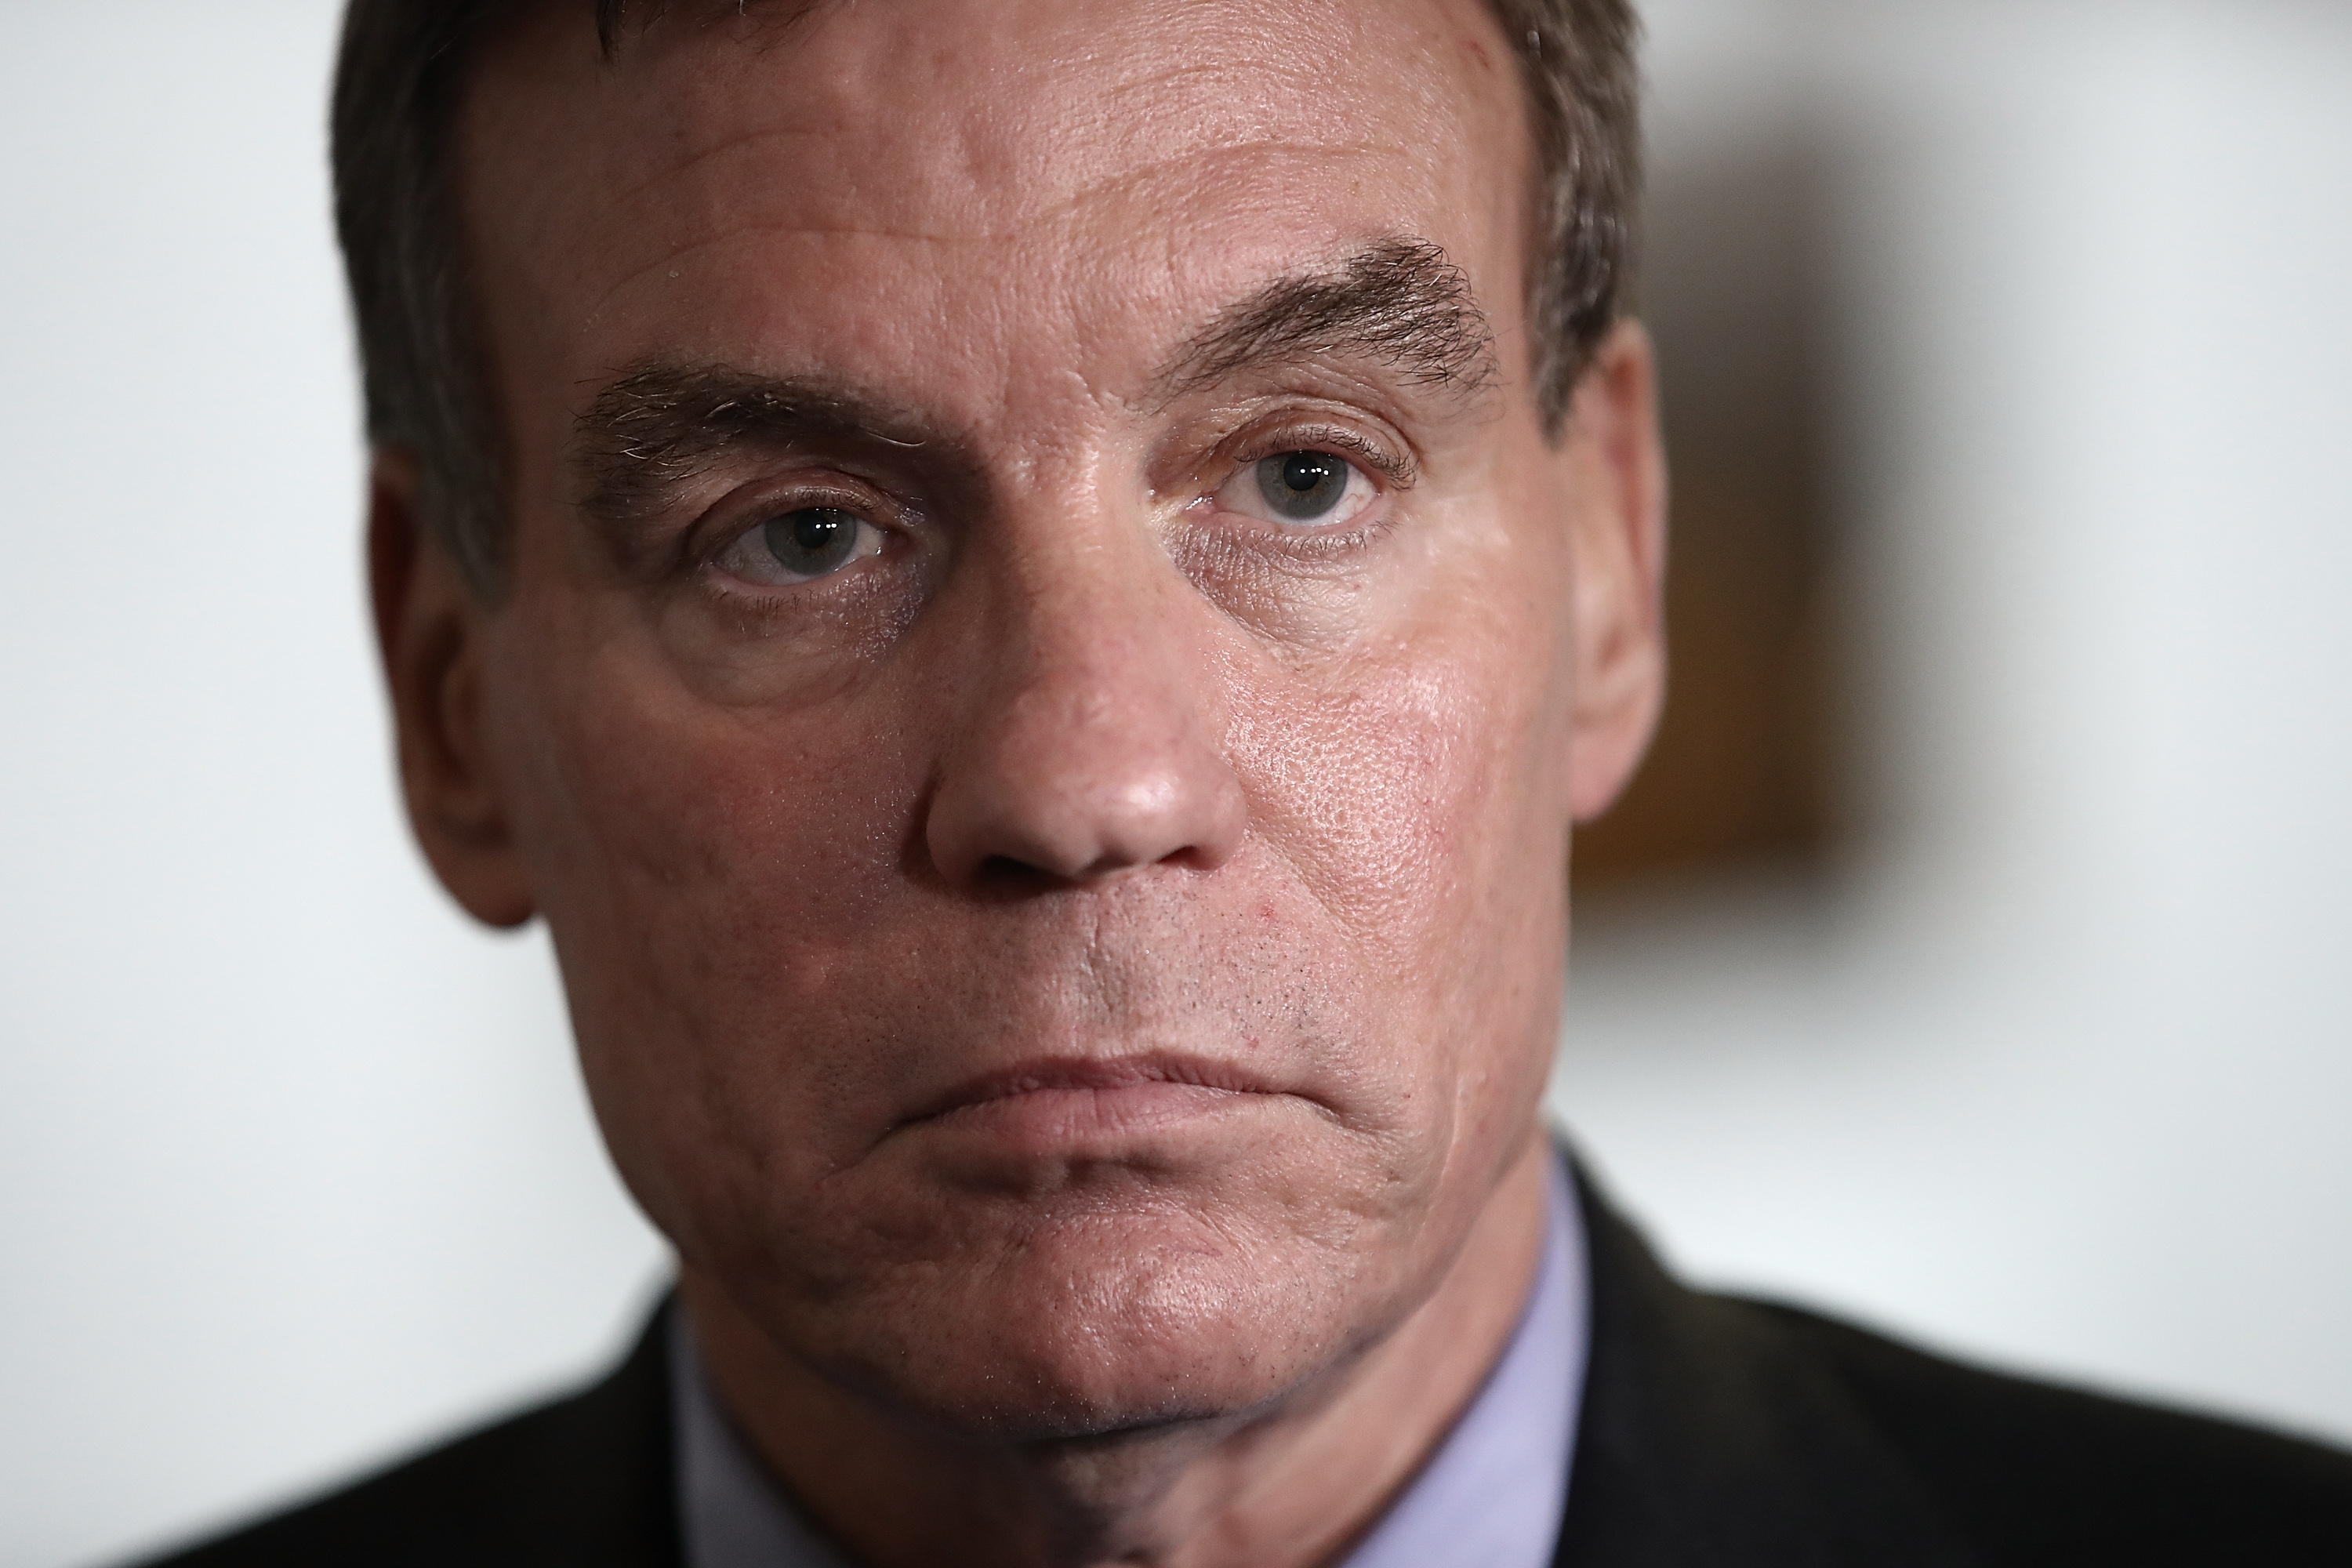 Senate Select Committee on Intelligence ranking member Mark Warner (D-VA) speaks to reporters after a meeting of the committee on Capitol Hill May 23, 2017 in Washington, DC.